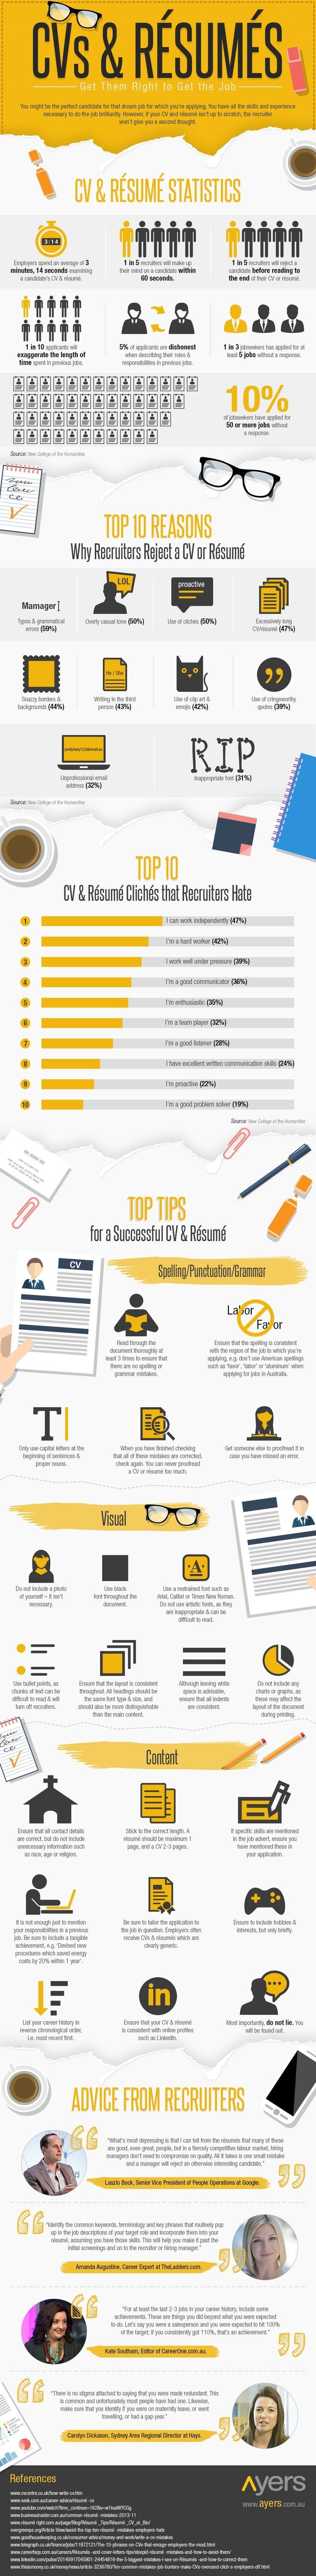 25 best resume writing ideas on pinterest resume writing tips resume and resume help